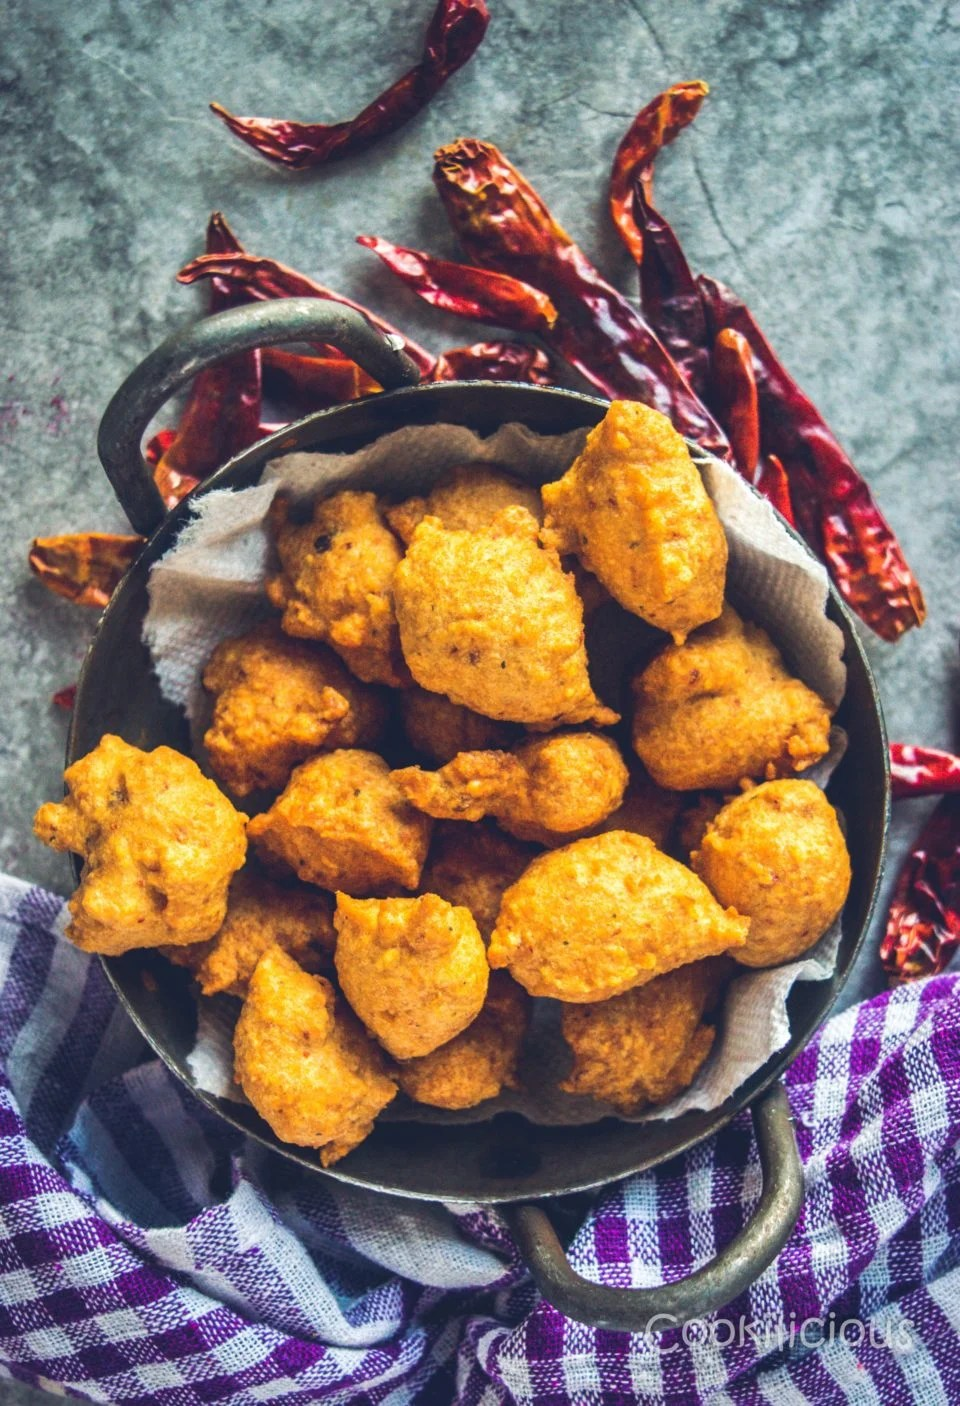 Flat lay shot of South Indian Medu Wada | Lentil Fritters in a kadai with dried red chillies around it.